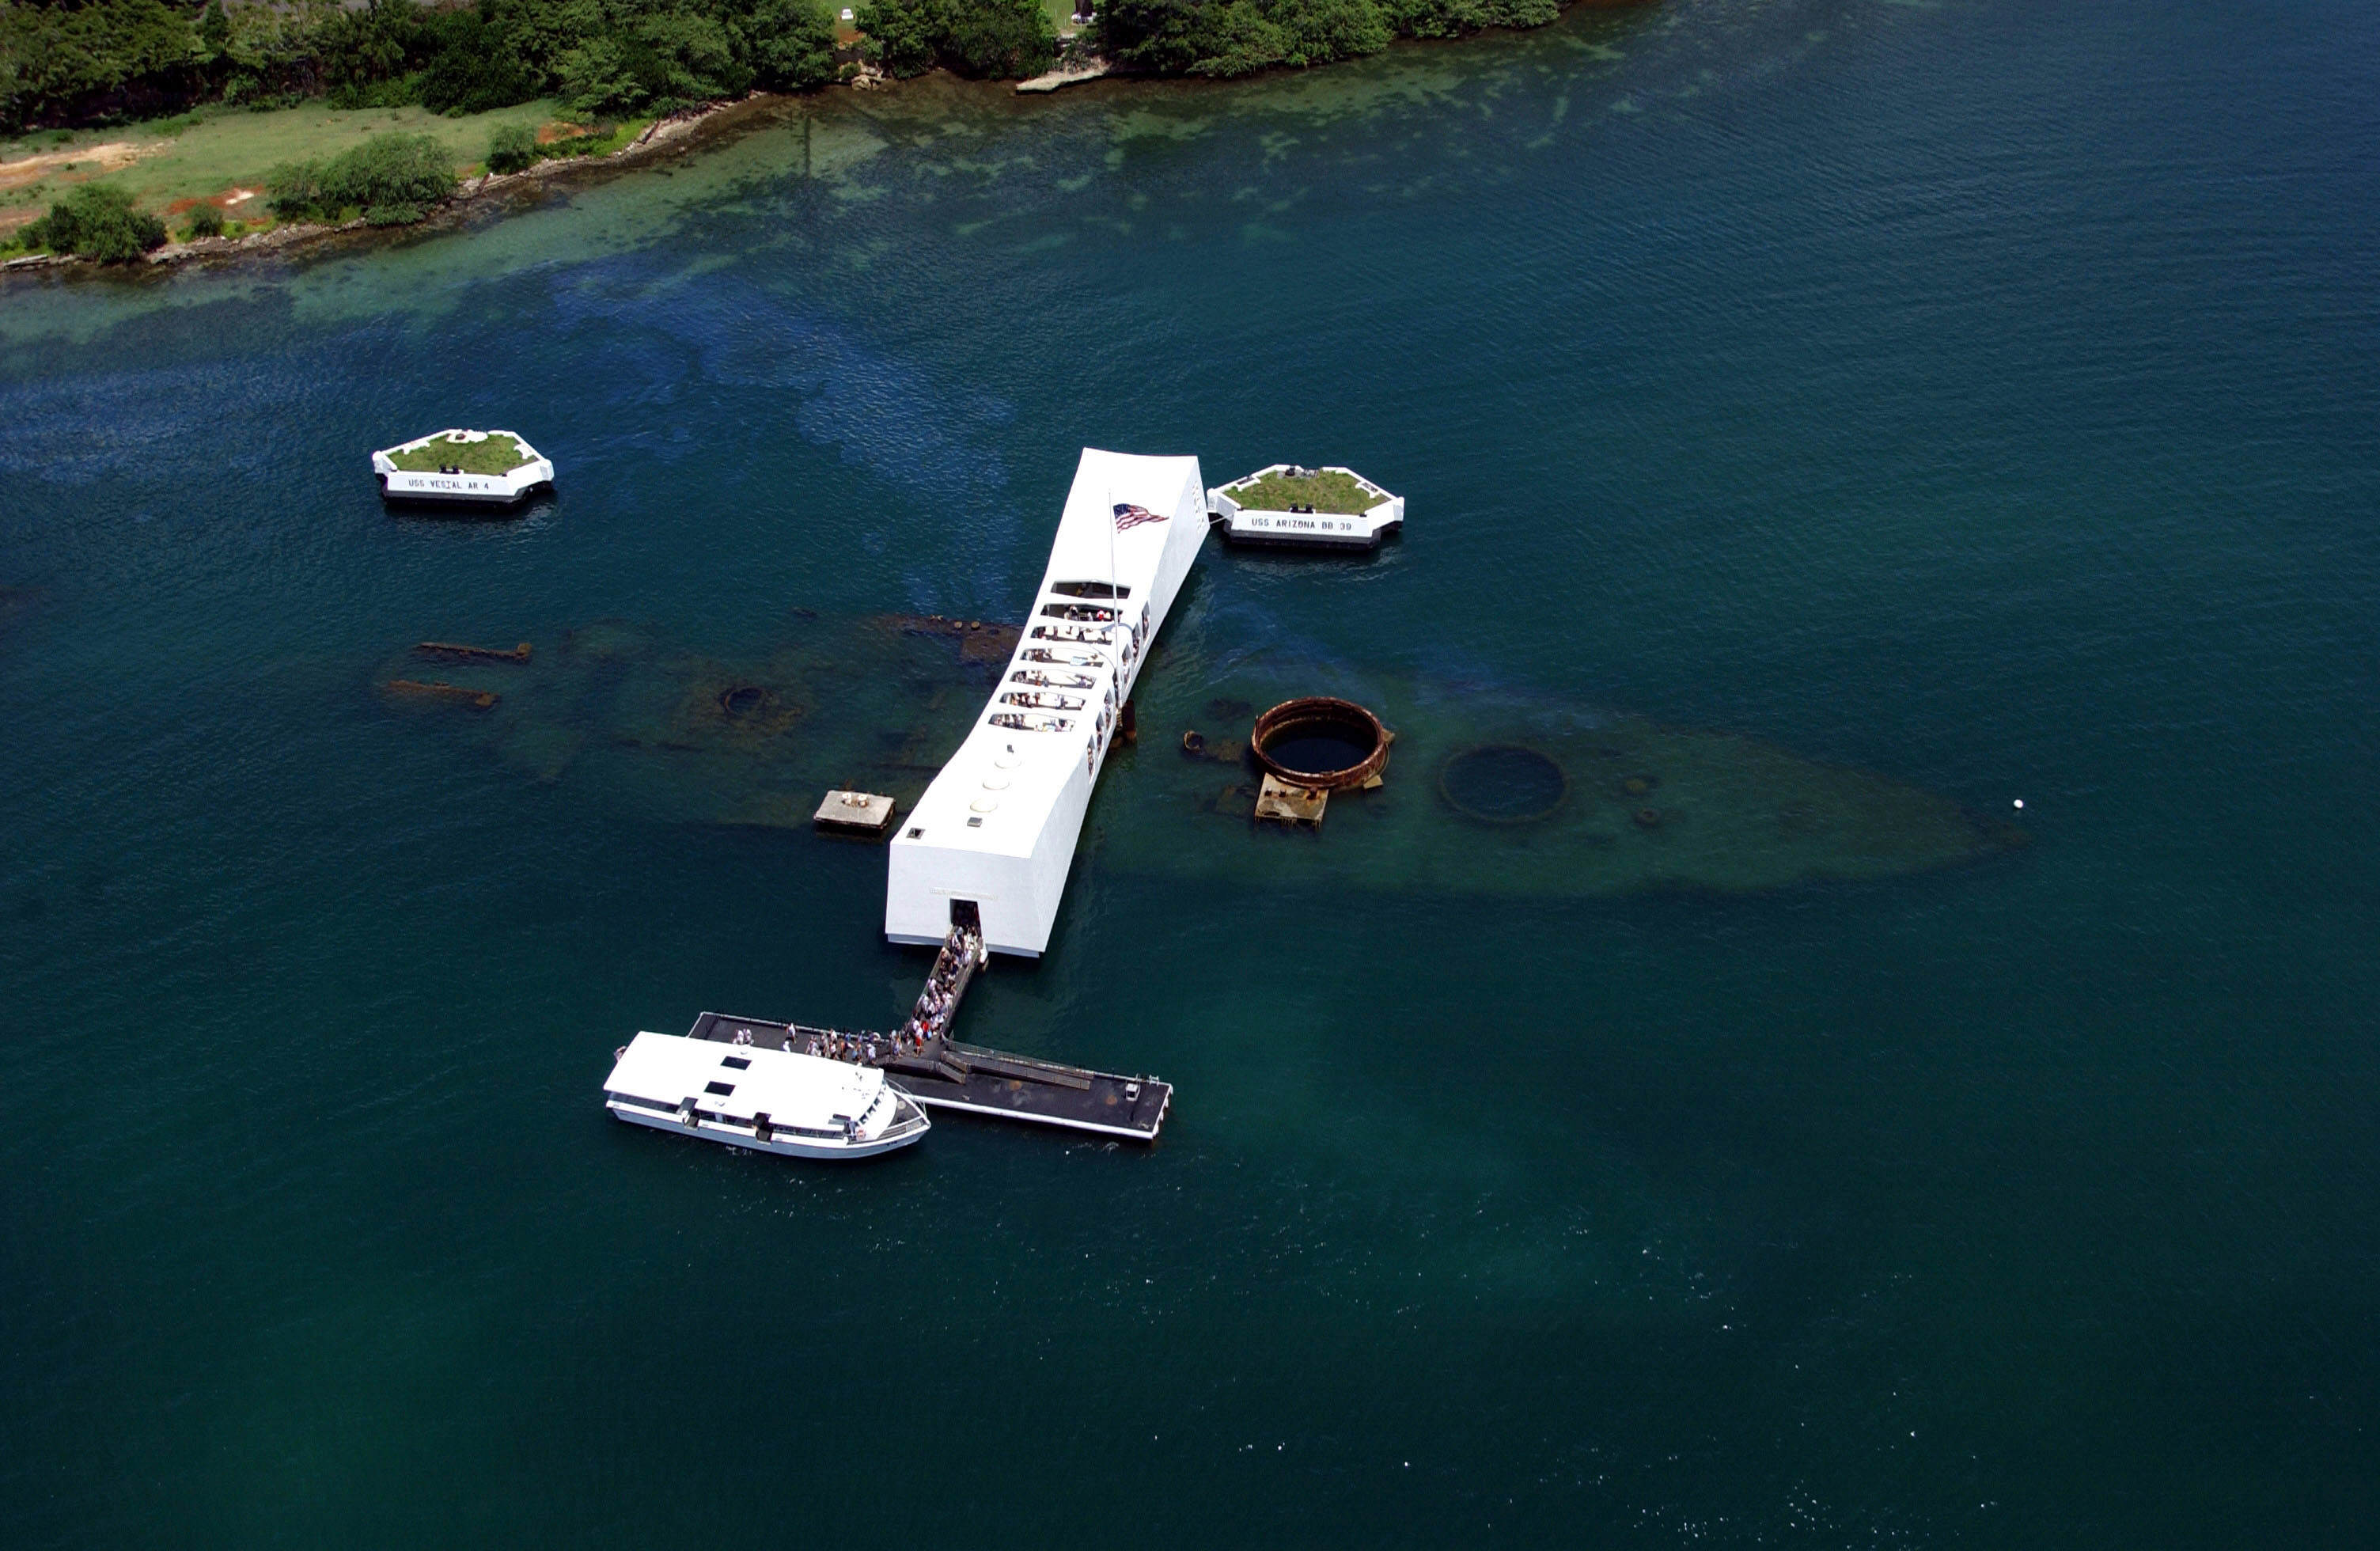 USS Arizona Memorial (aerial view) - Le USS Arizona Memorial de nos jours (vue aérienne)